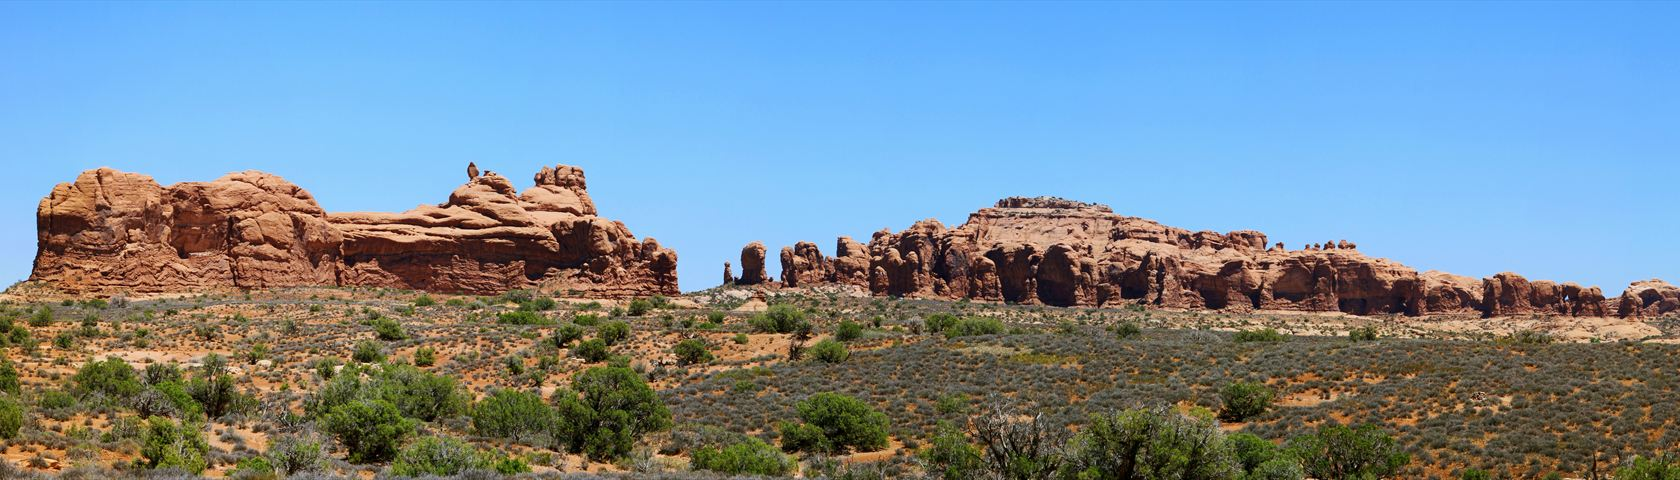 Inside Arches National Park (USA)